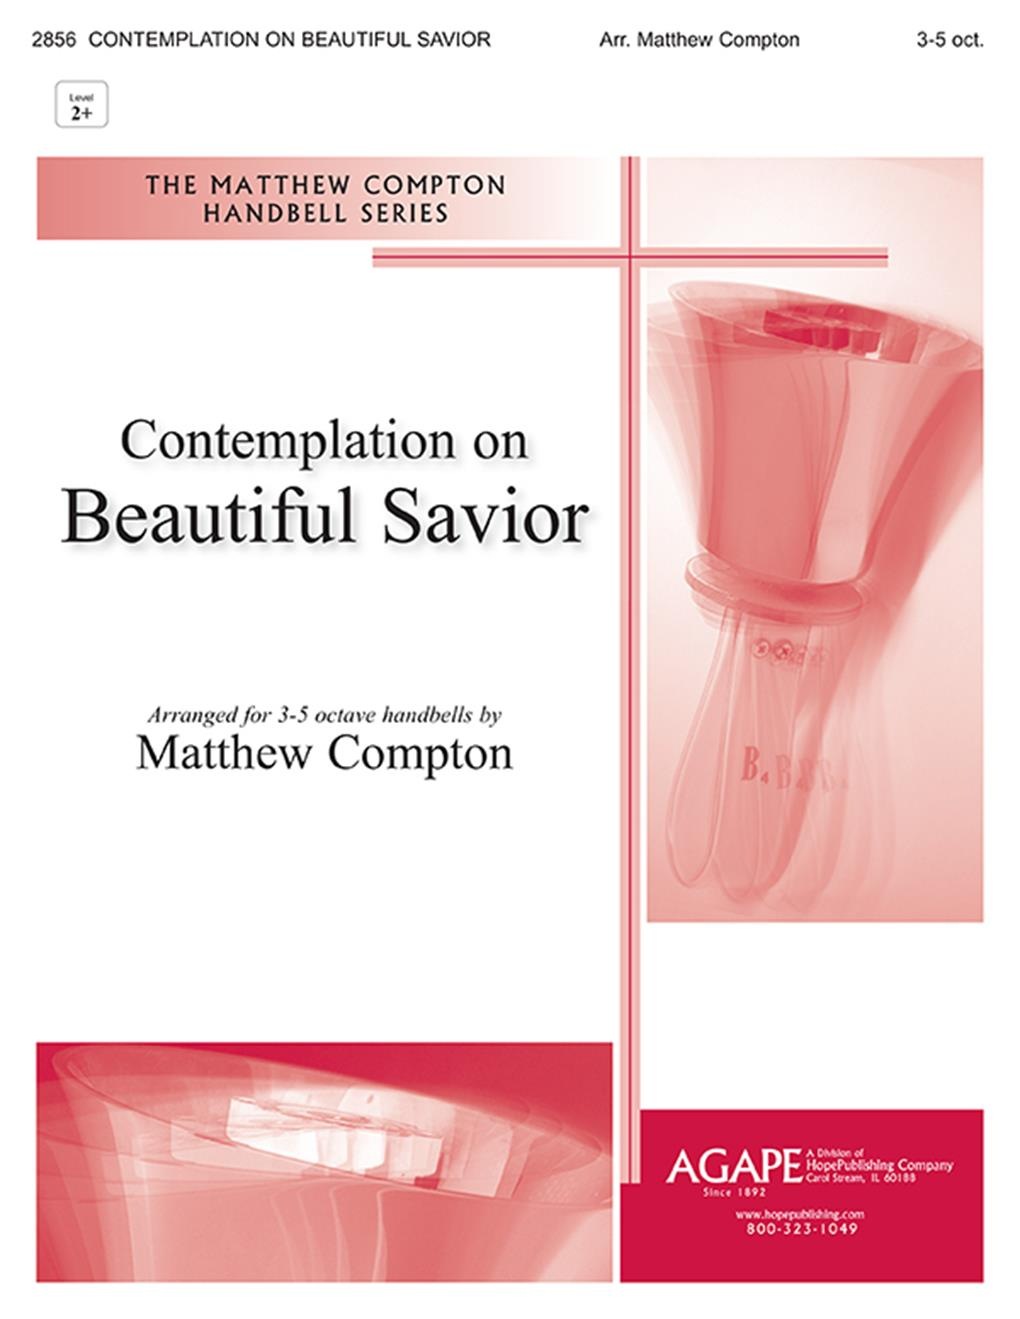 Contemplation on Beautiful Savior - 3-5 oct. Cover Image